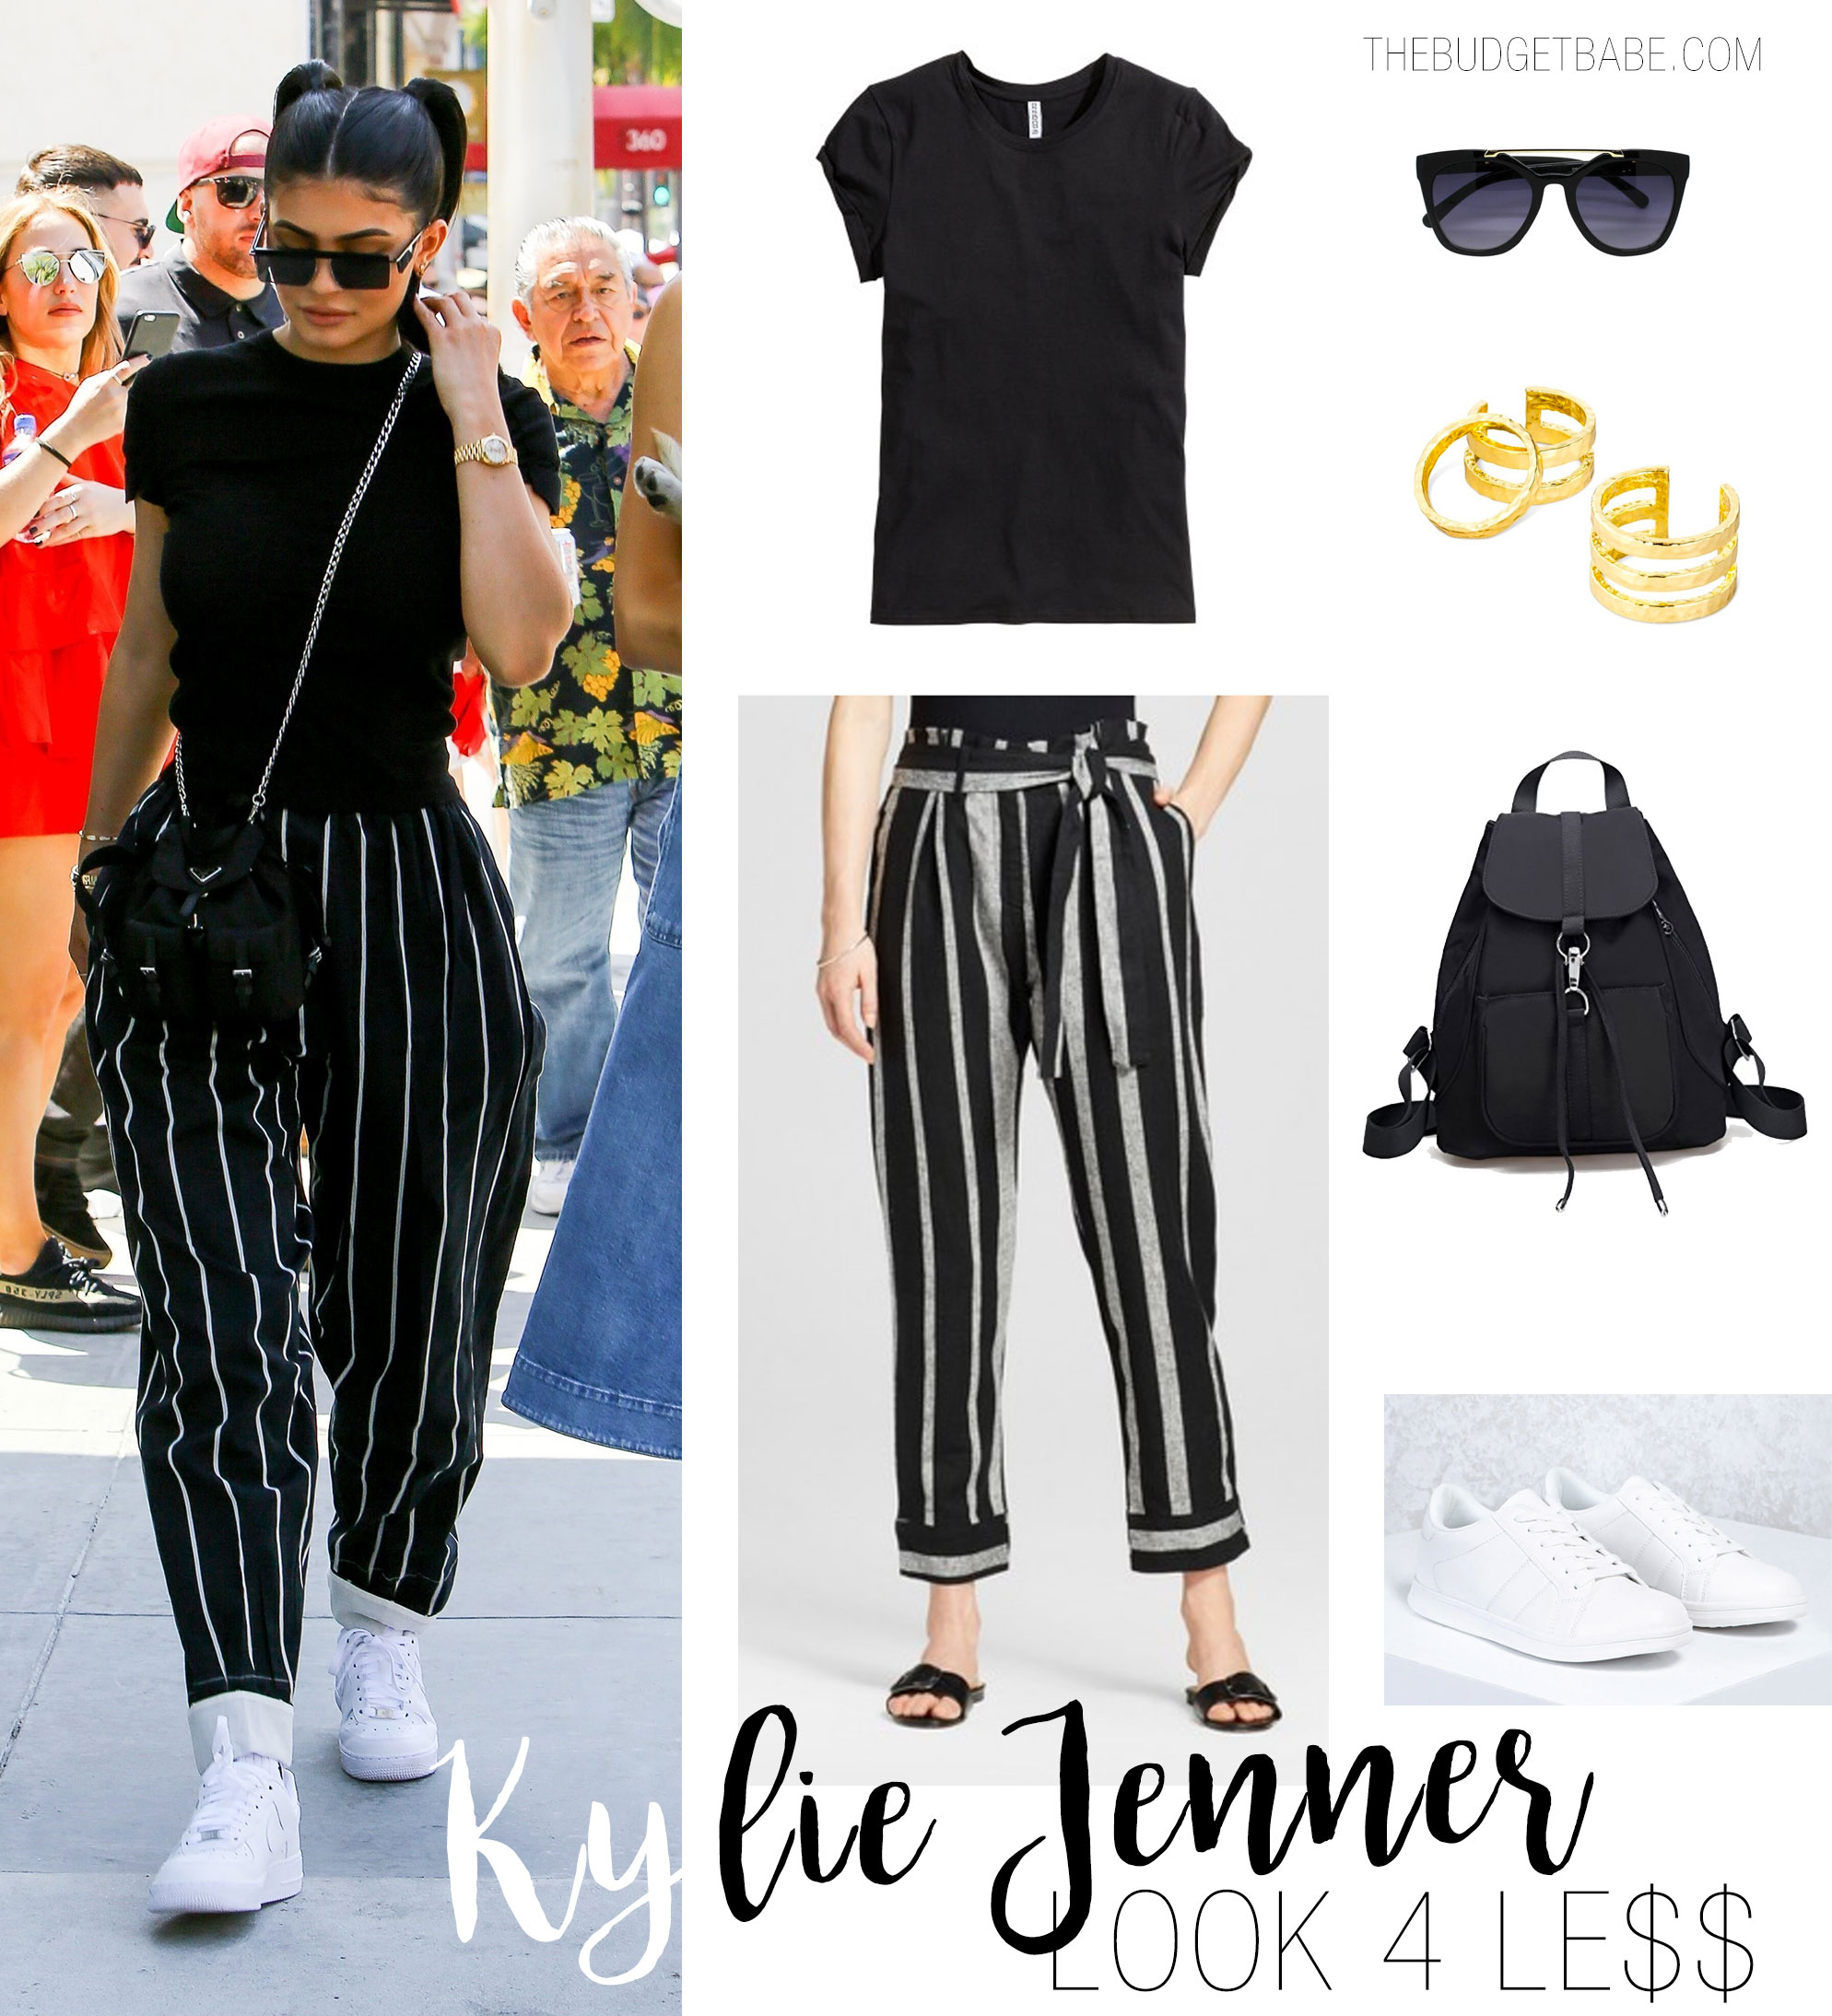 Kylie Jenner wears Celine vertical striped trousers while out and about with sister Kendall on Father's Day.